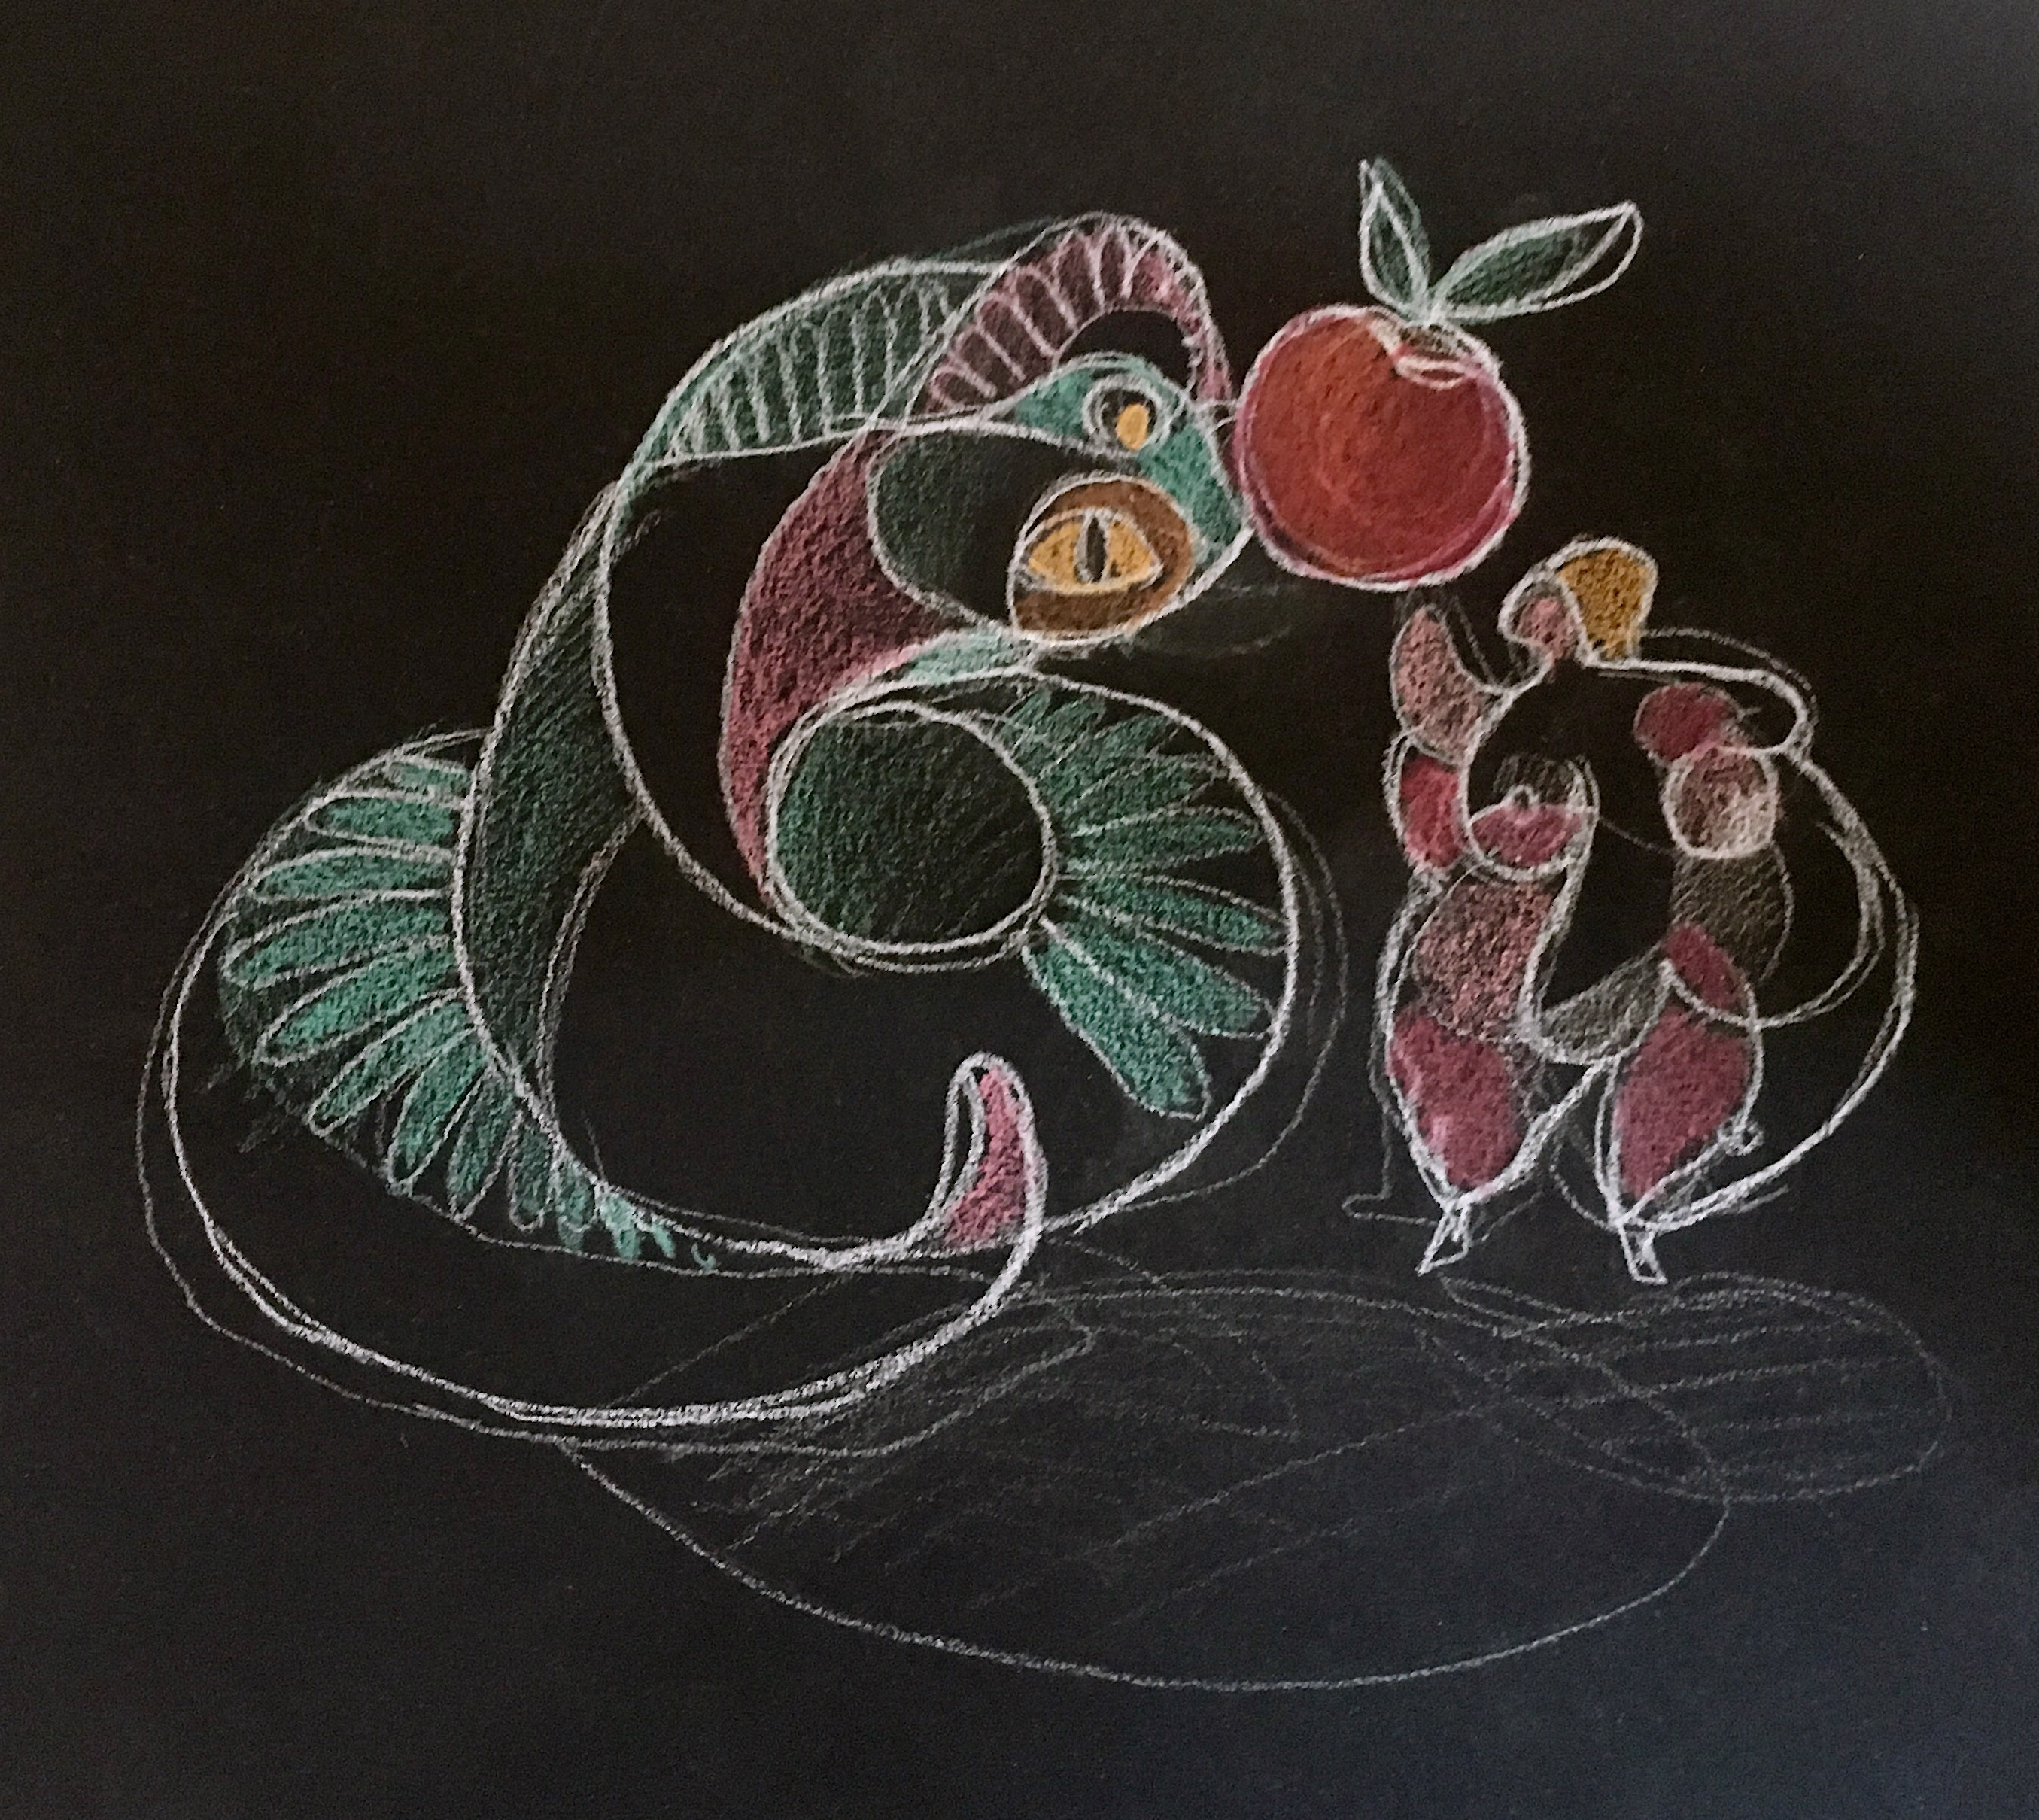 Eve et le serpent dessin 2018